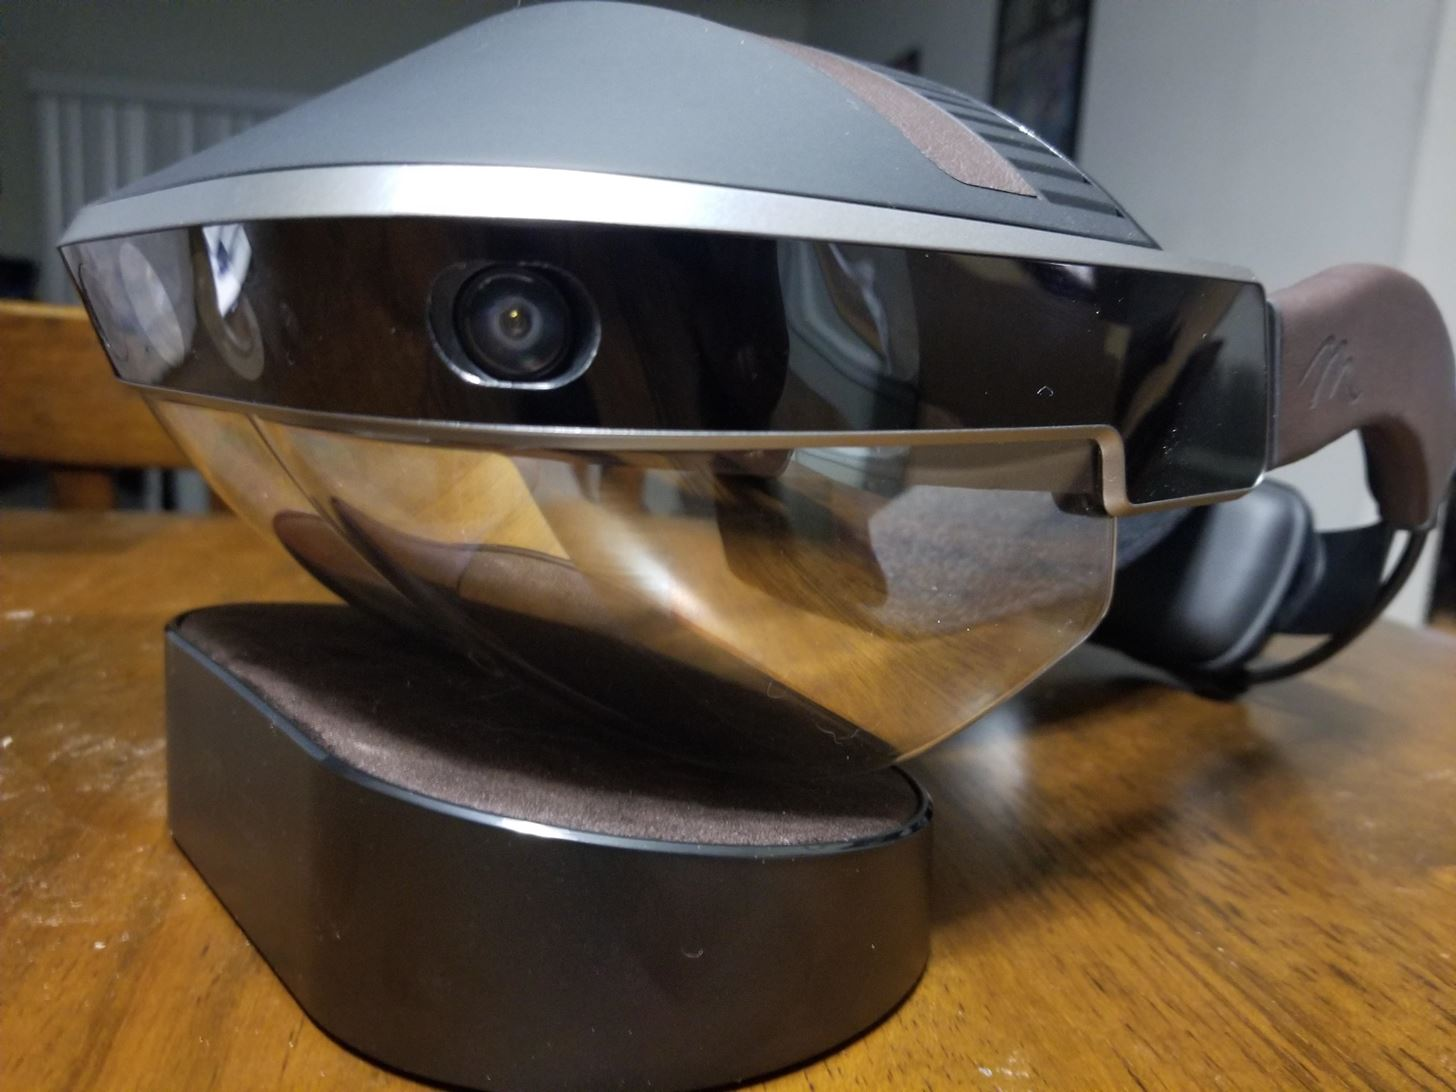 How to Set Up the Meta 2 Head-Mounted Display